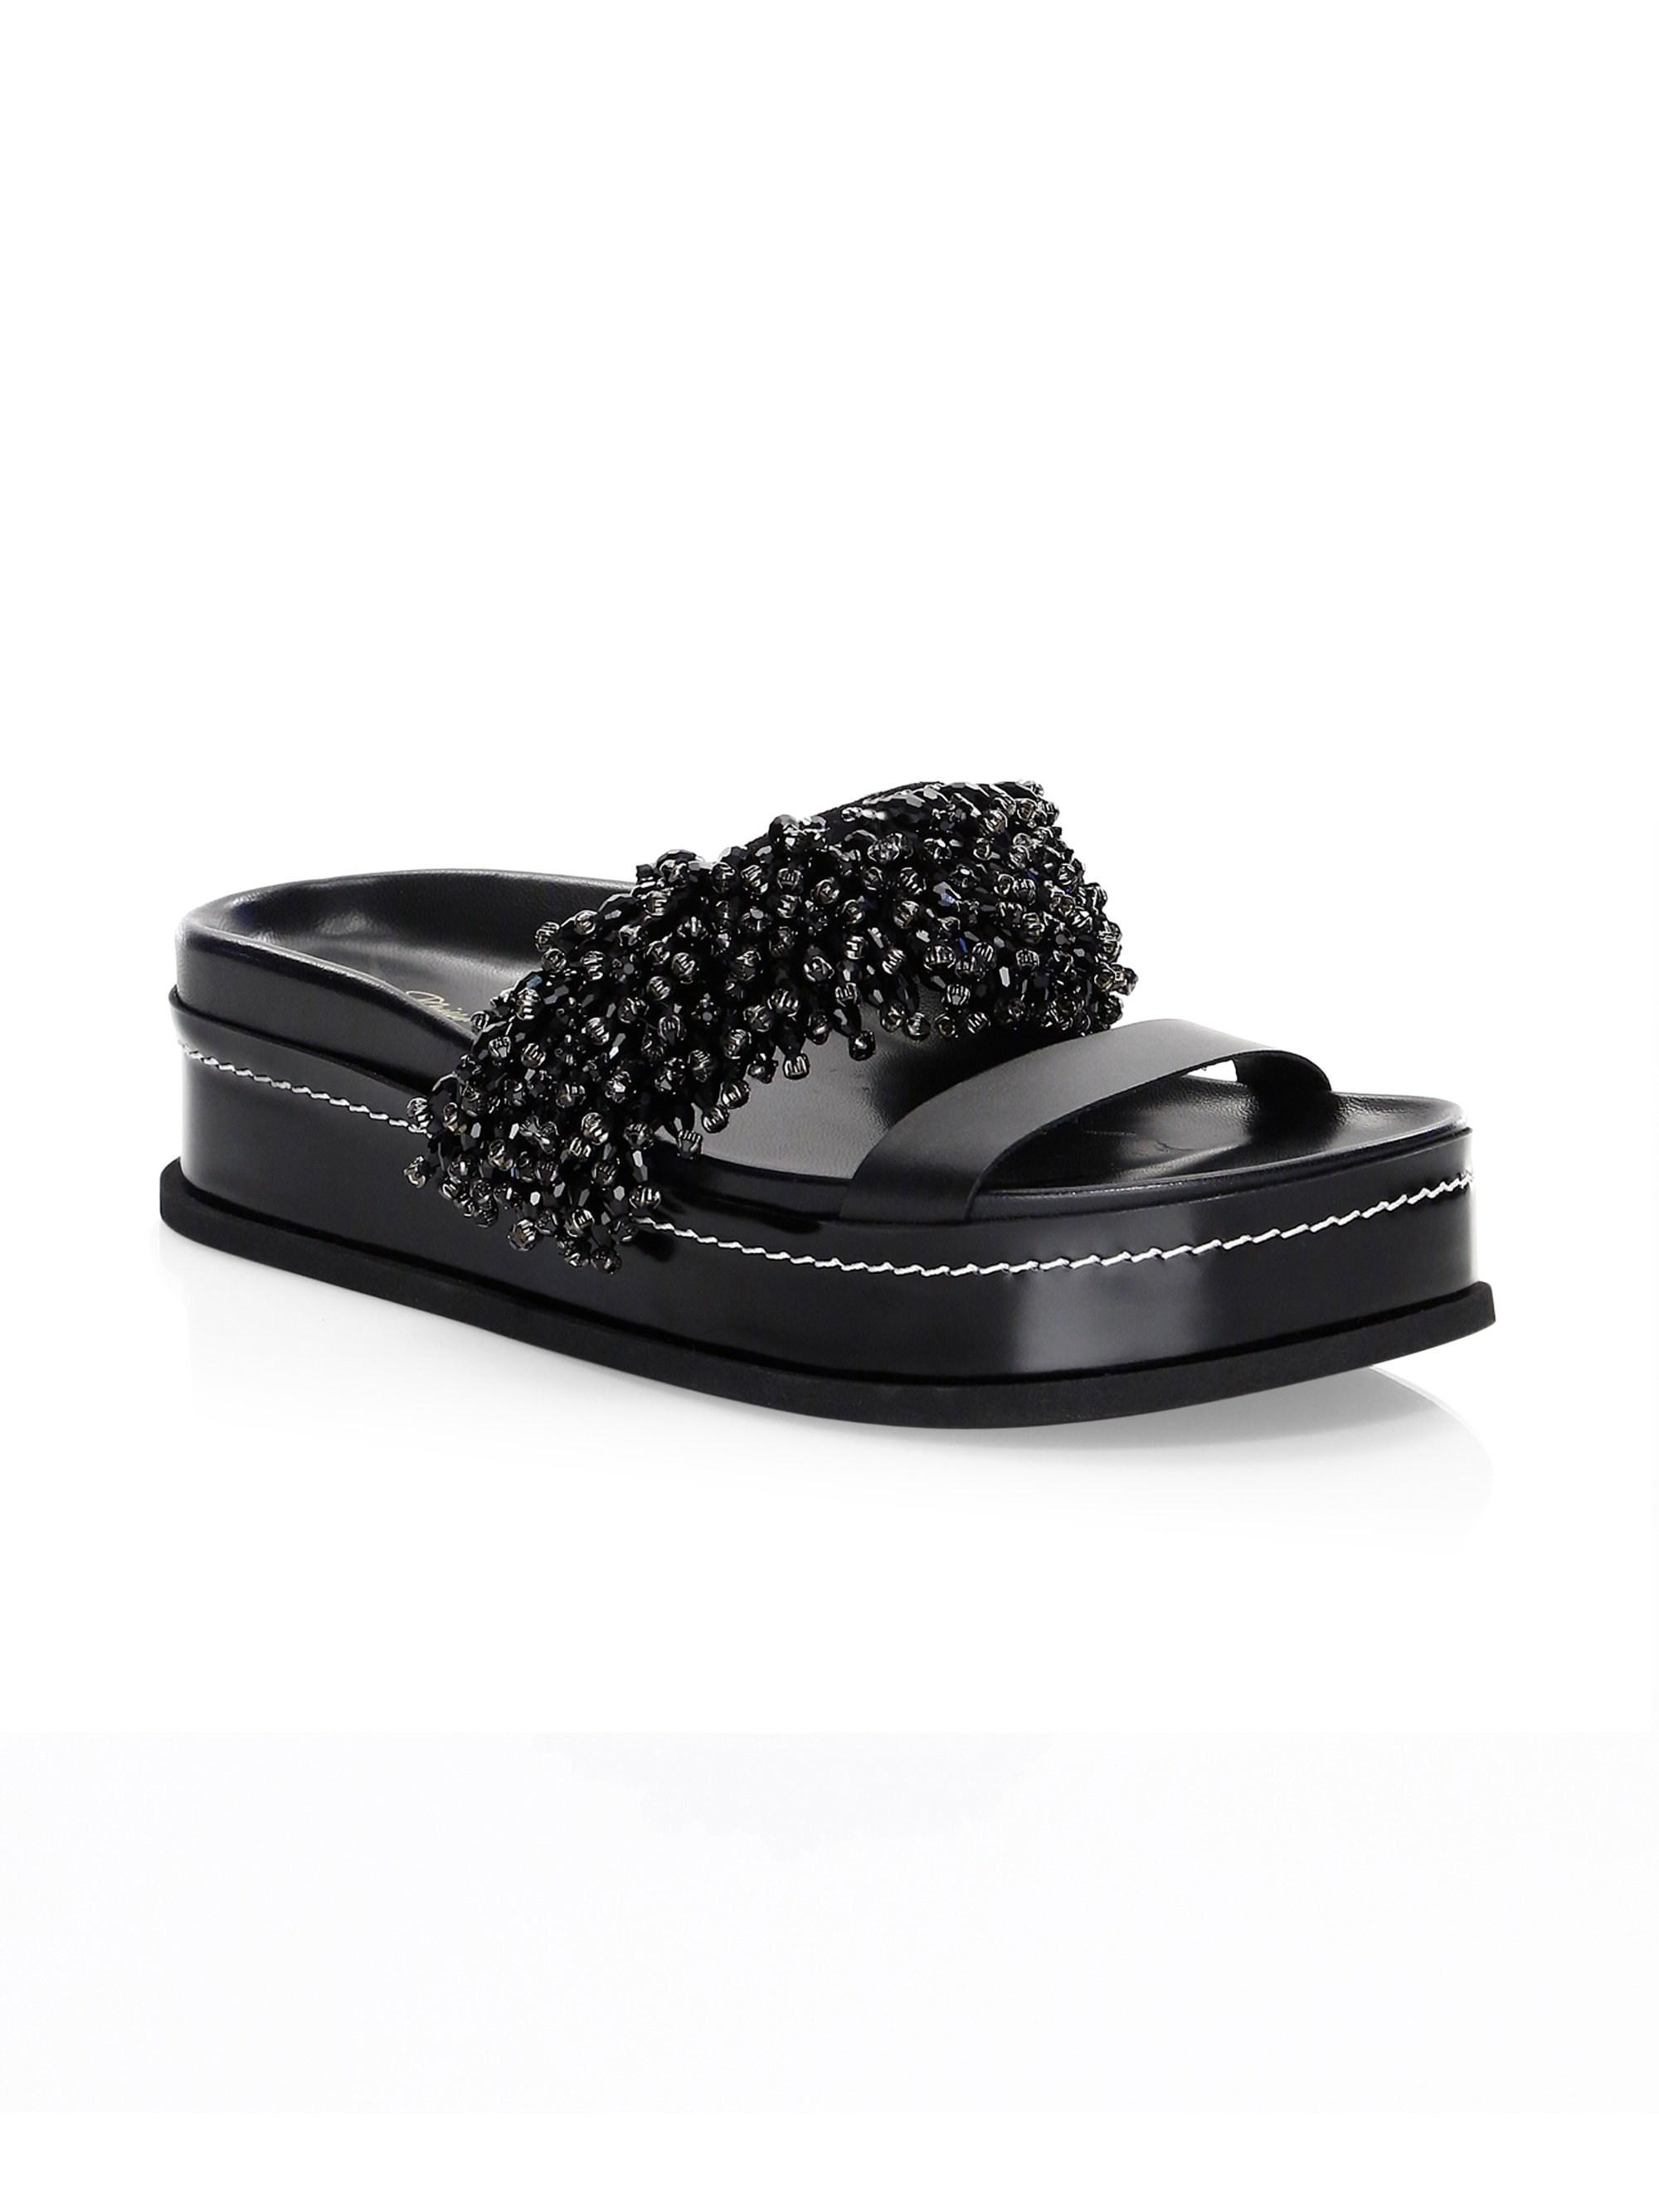 ed2feb10be9a73 ... Black Freida Beaded Platform Slides - Lyst. View fullscreen